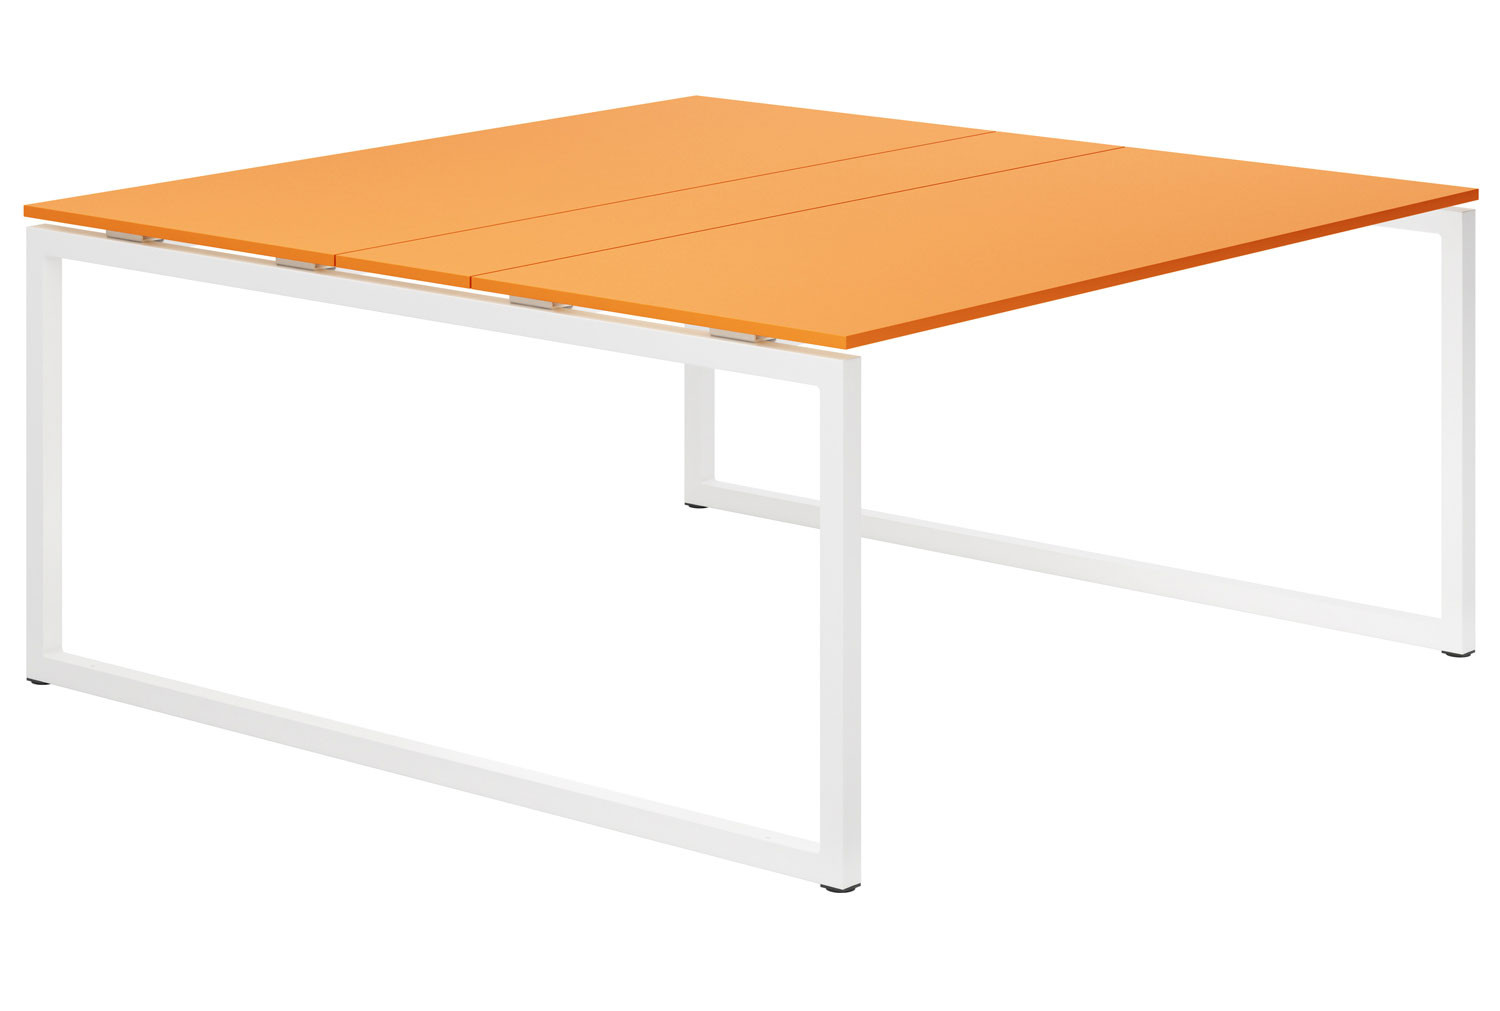 Campos Hooped Leg 6-8 Person Meeting Table (Orange)